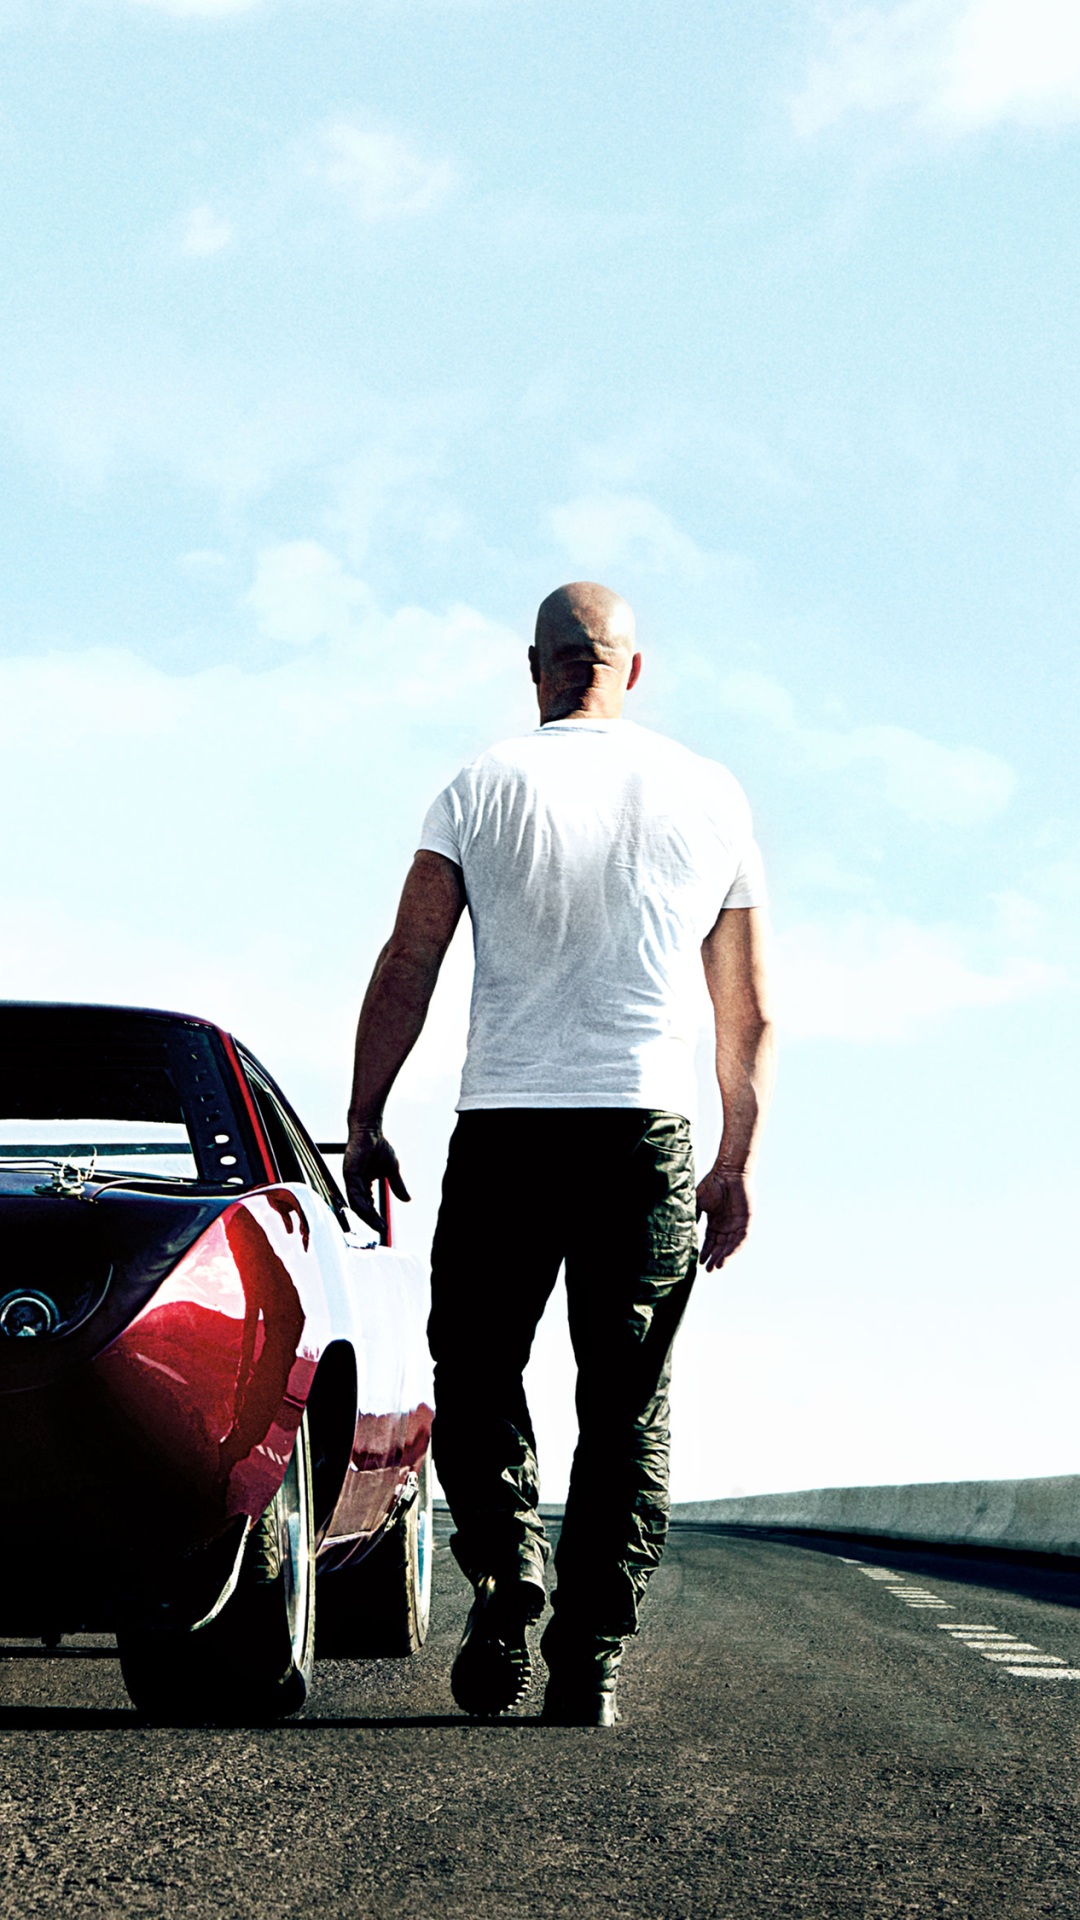 Movie Fast Furious 6 1080x1920 Wallpaper Id 732661 Mobile Abyss